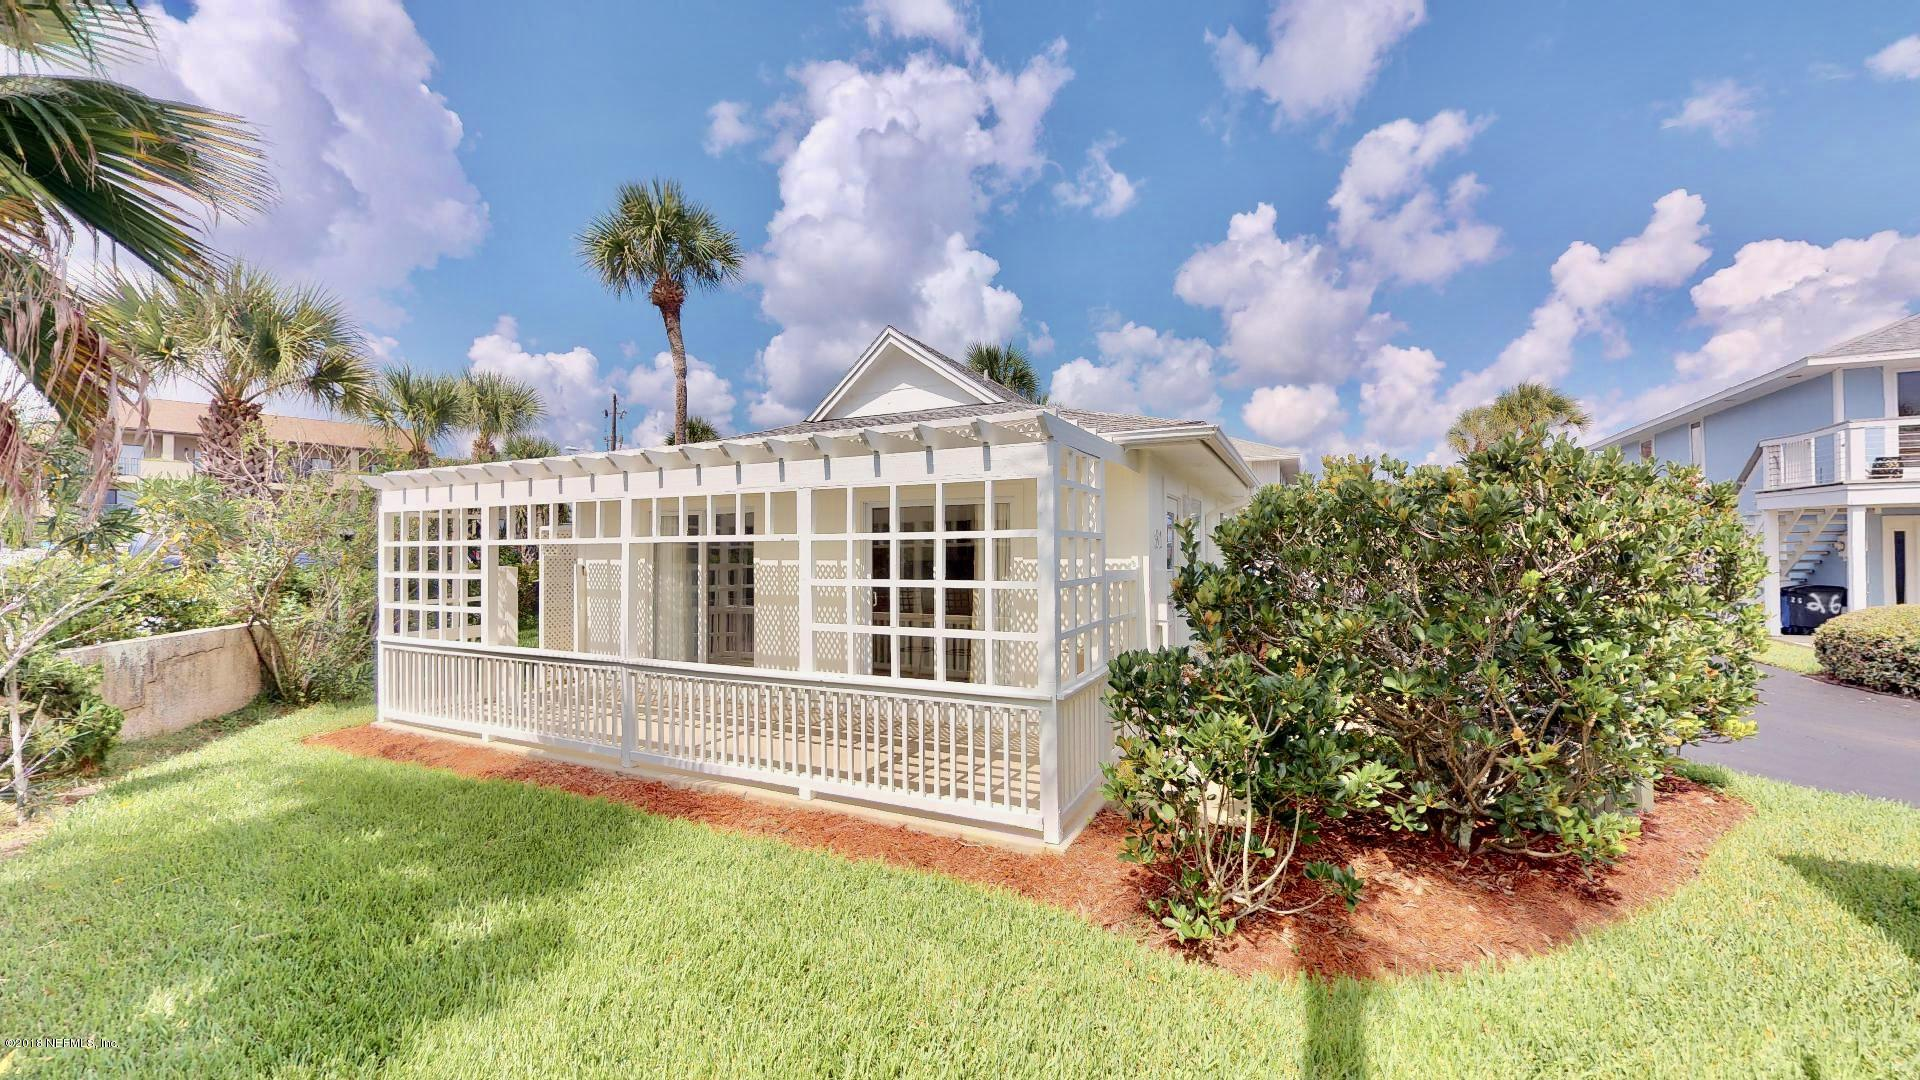 31 DRUM POINT, ST AUGUSTINE, FLORIDA 32080, 2 Bedrooms Bedrooms, ,1 BathroomBathrooms,Residential - single family,For sale,DRUM POINT,961276